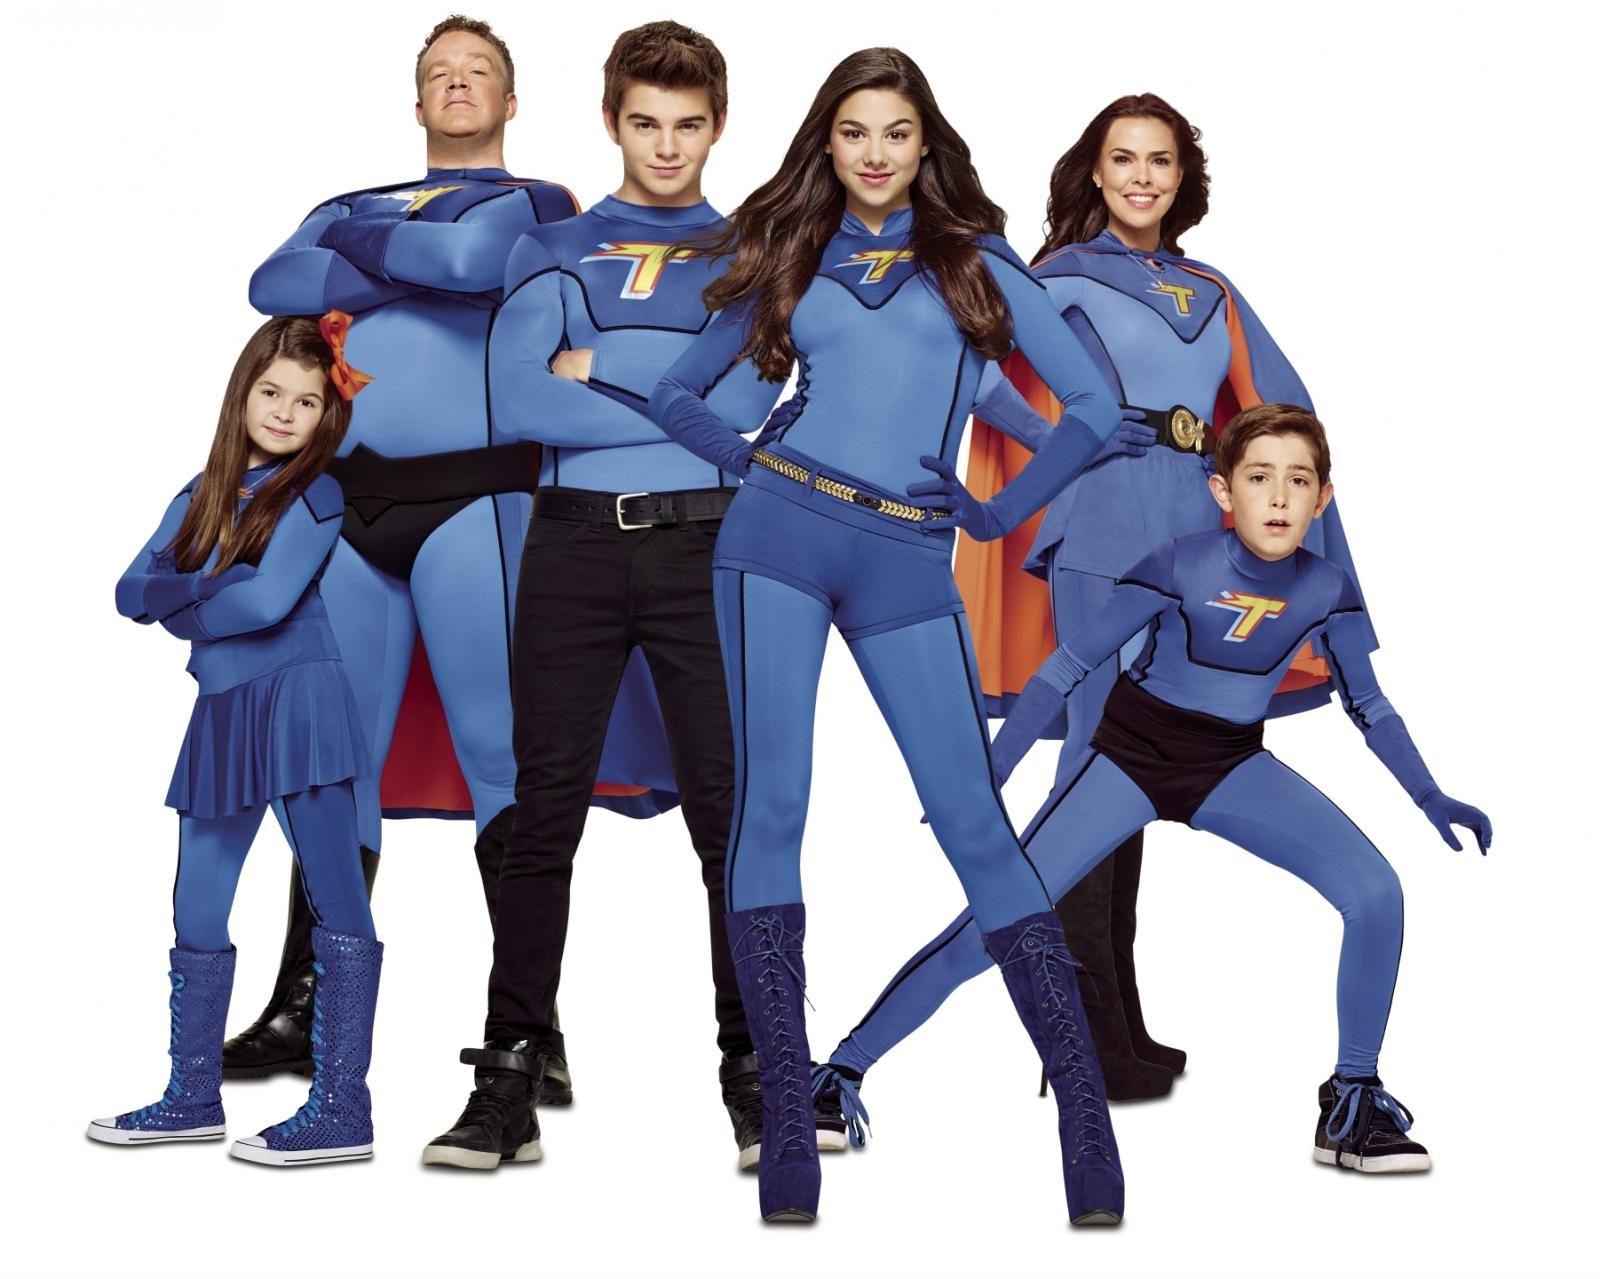 PREPARE FOR THE SUPER POWERED LAUNCH OF THE THUNDERMANS VIACOM PRESS 1600x1279